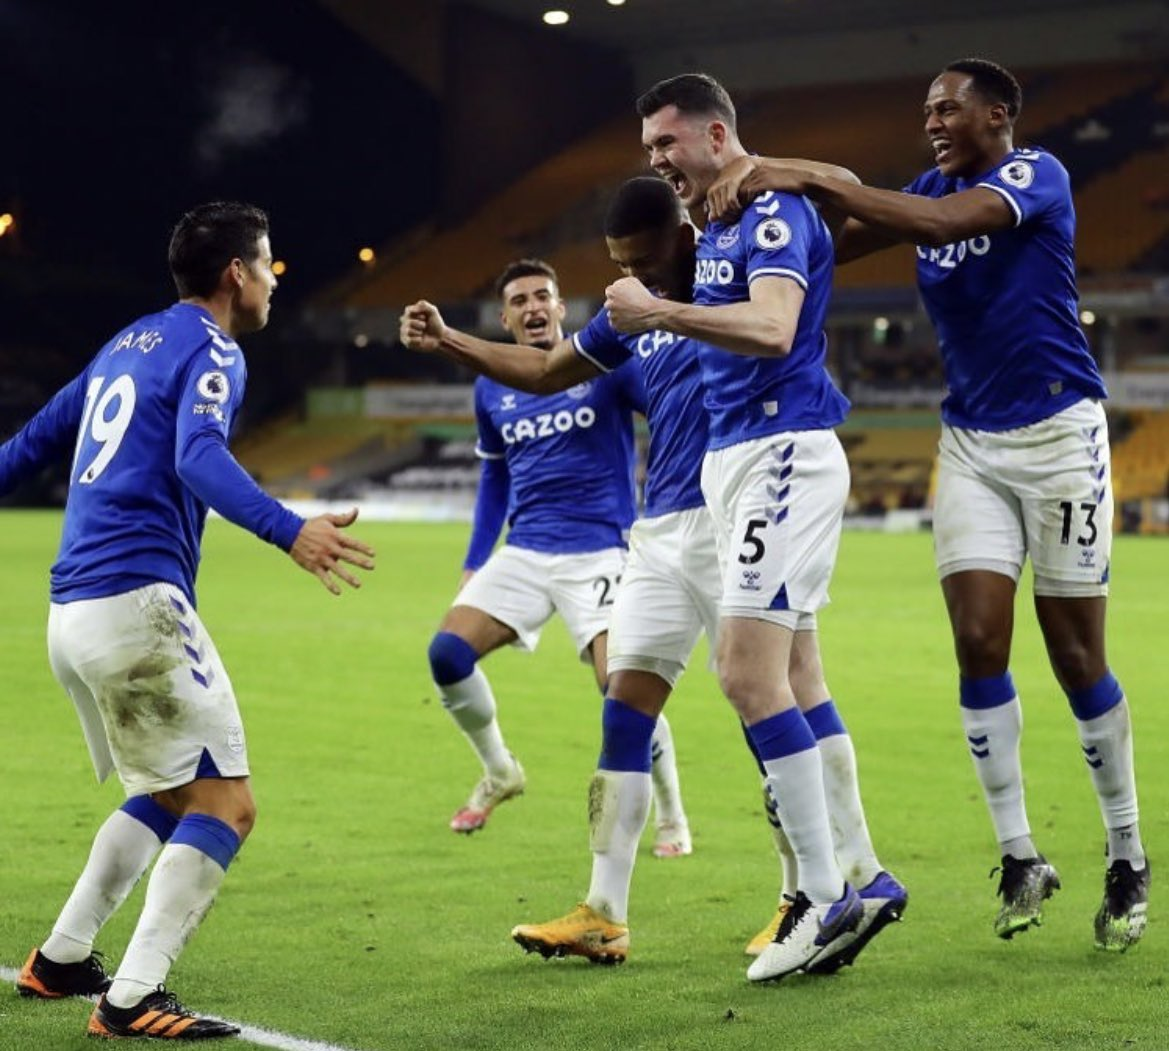 @michaelkeane04's photo on Everton